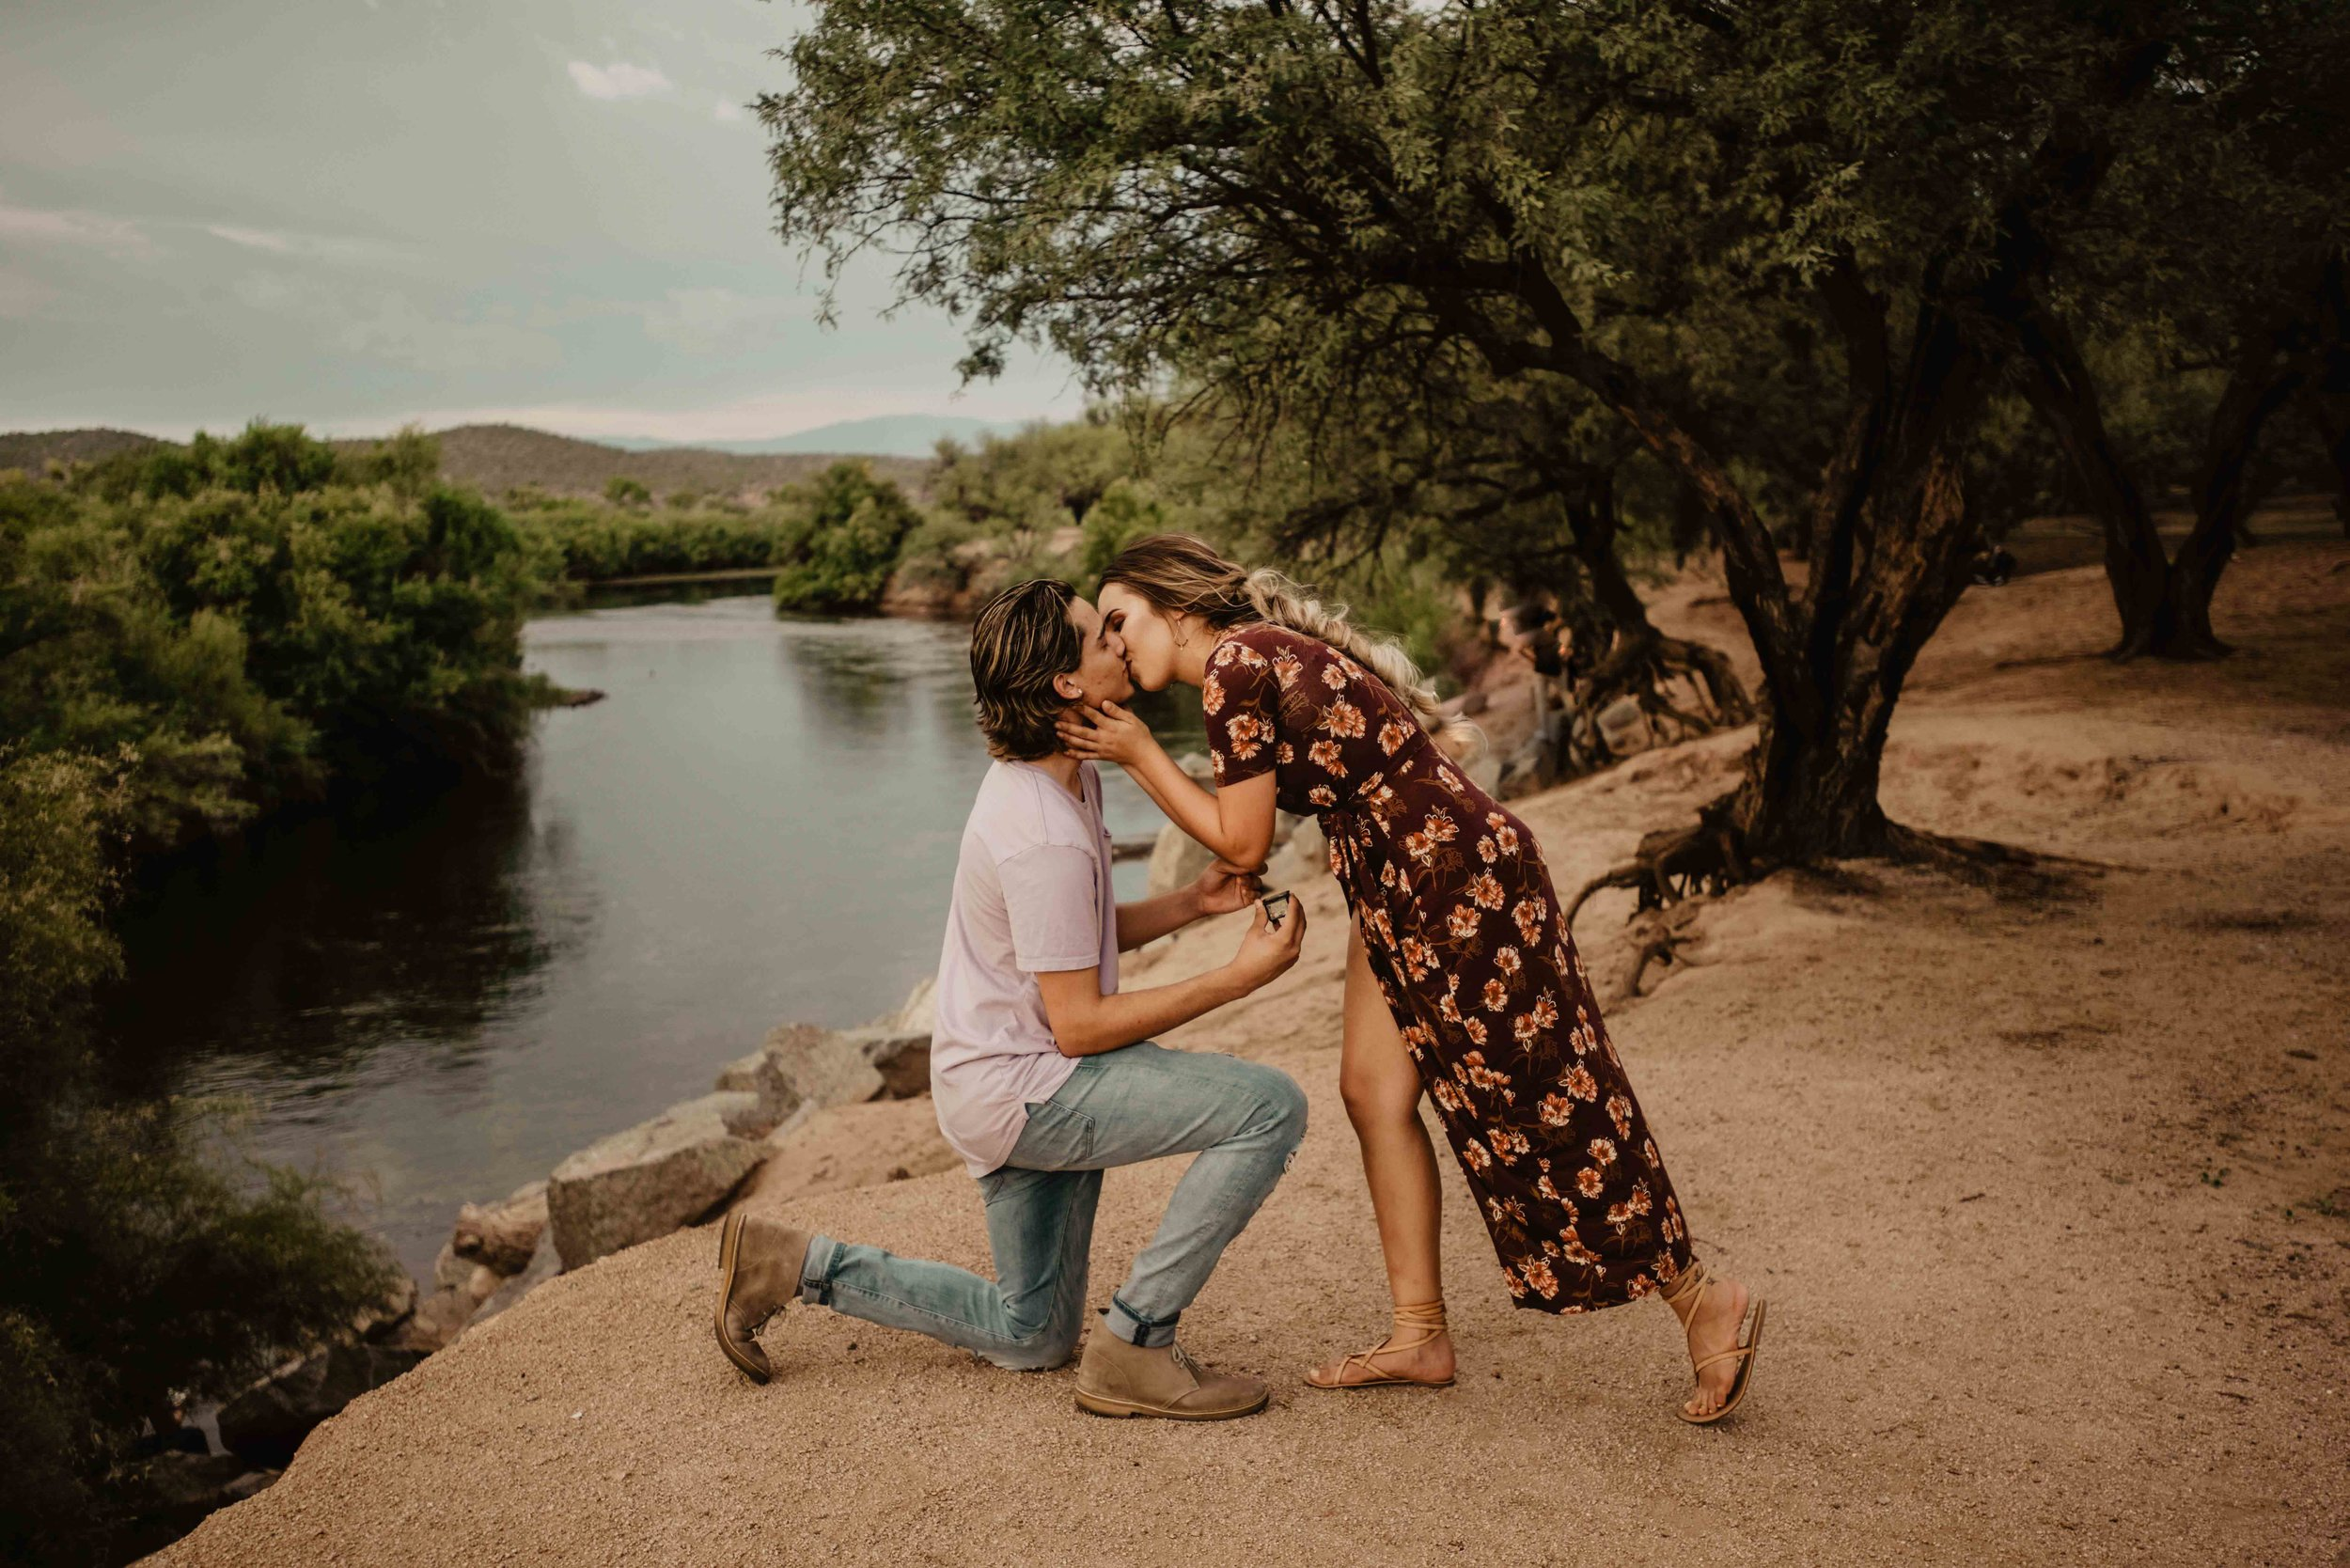 Scottsdale Engagment Photographer - Scottsdale Proposal Photographer - Winter ELopement - Arizona Salt River ELopement